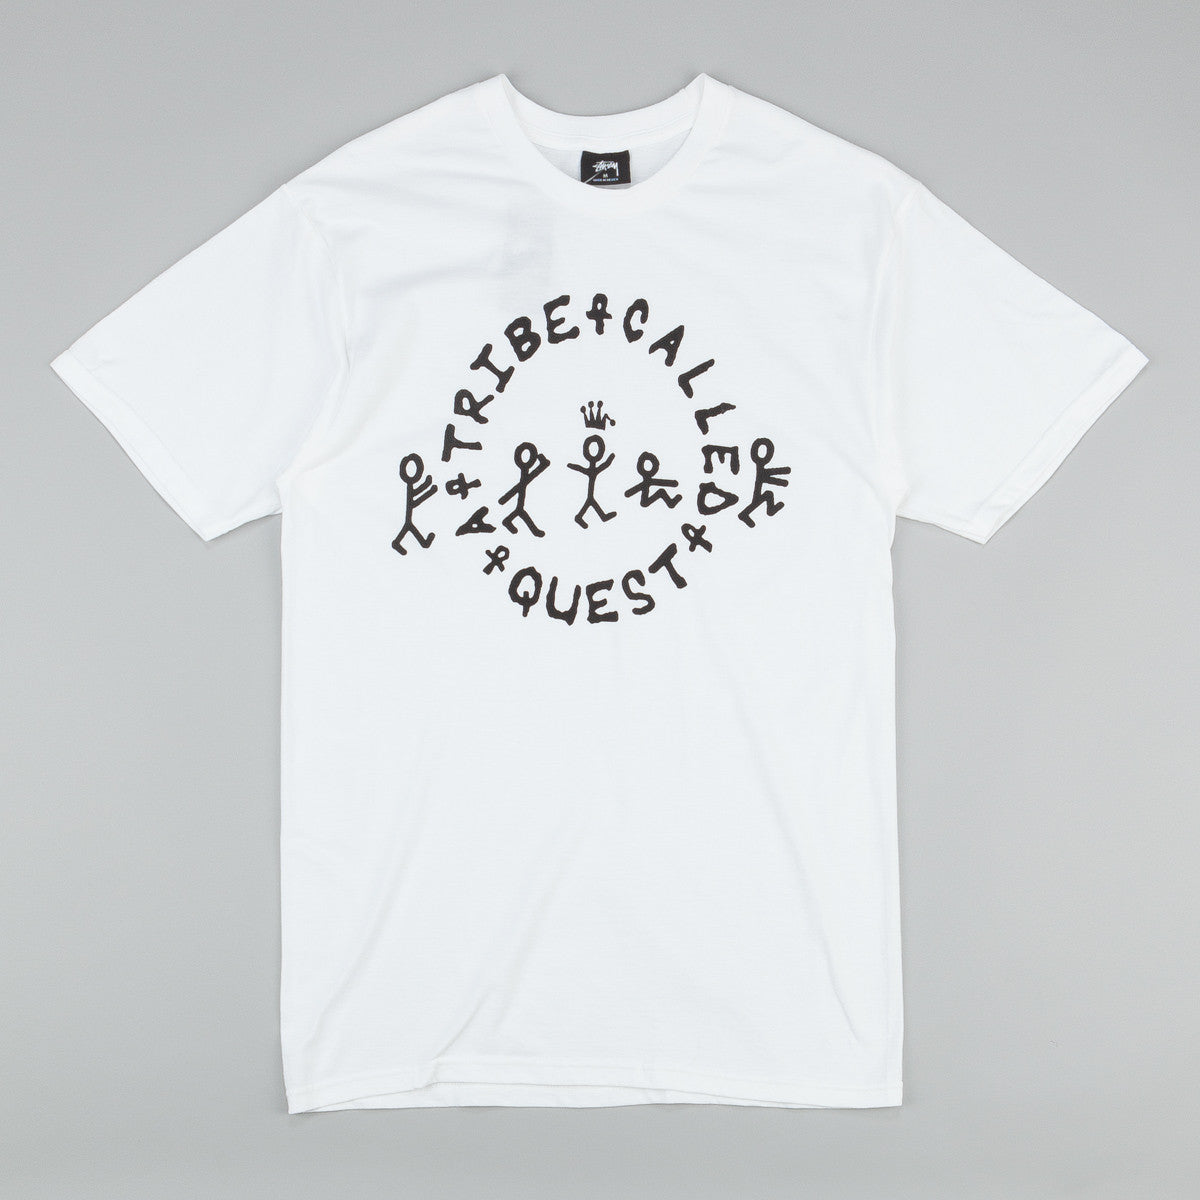 Stussy x ATCQ Quest Circle T-Shirt White